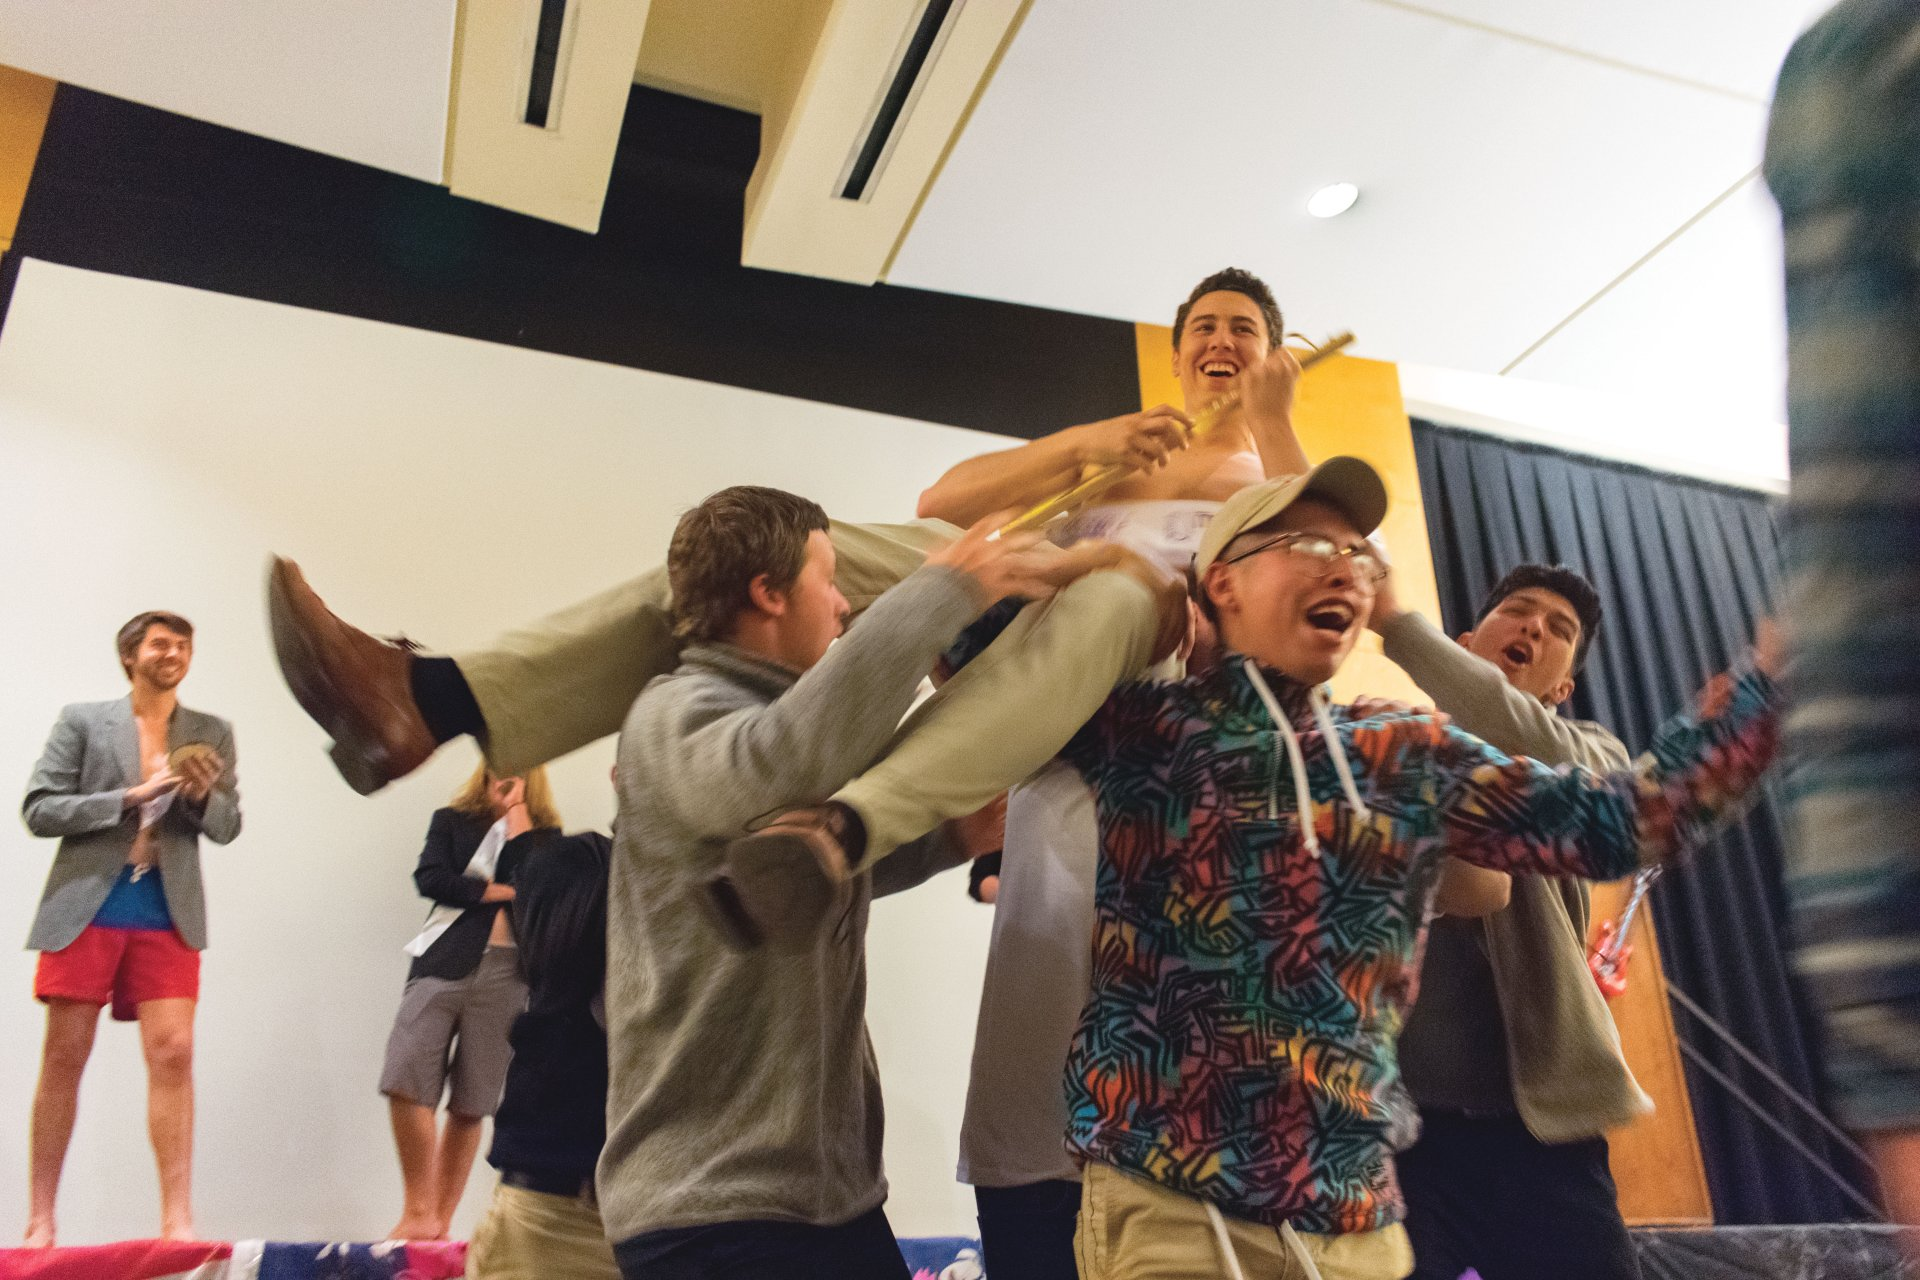 Andrew Pedroza is carried off stage by his Chi Phi fraternity brothers after being crowned the 2018 Deepher Dude in the Kate Buchanan Room on Feb. 23. Deepher Dude is Humboldt State University Delta Phi Epsilon chapter's annual male beauty pageant. Photo by Megan Bender.